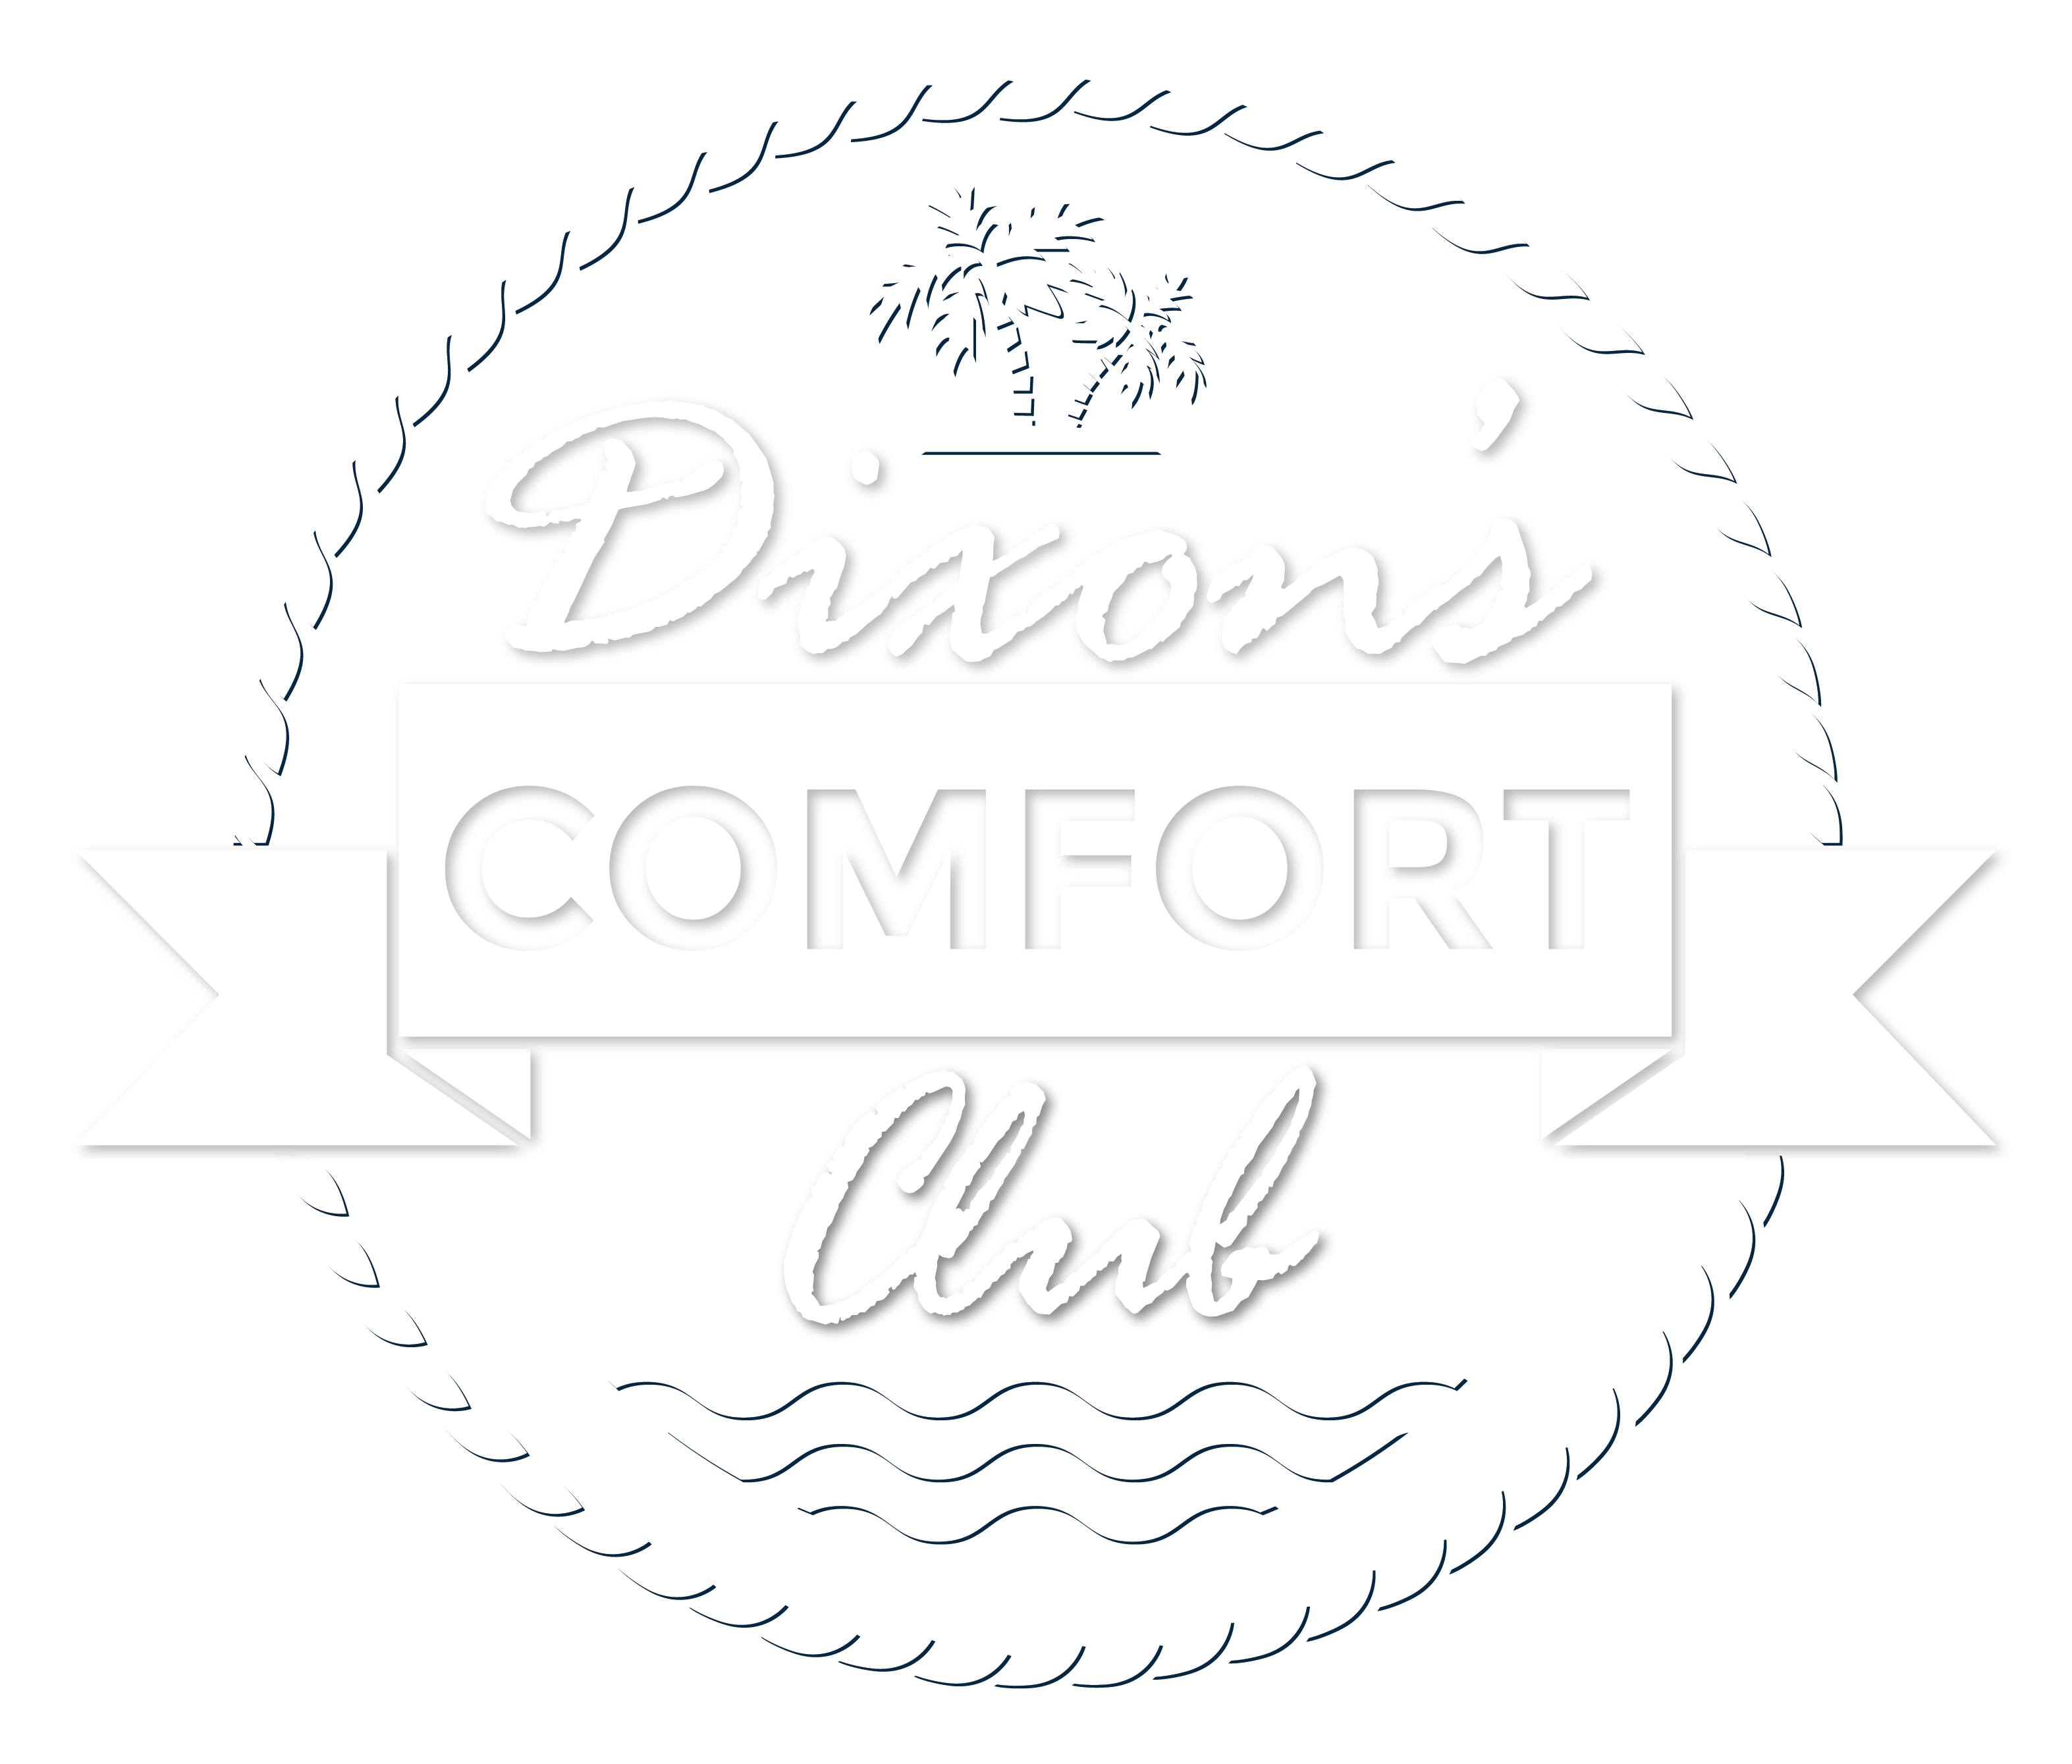 Dixon's Comfort Club badge white with drop shadow